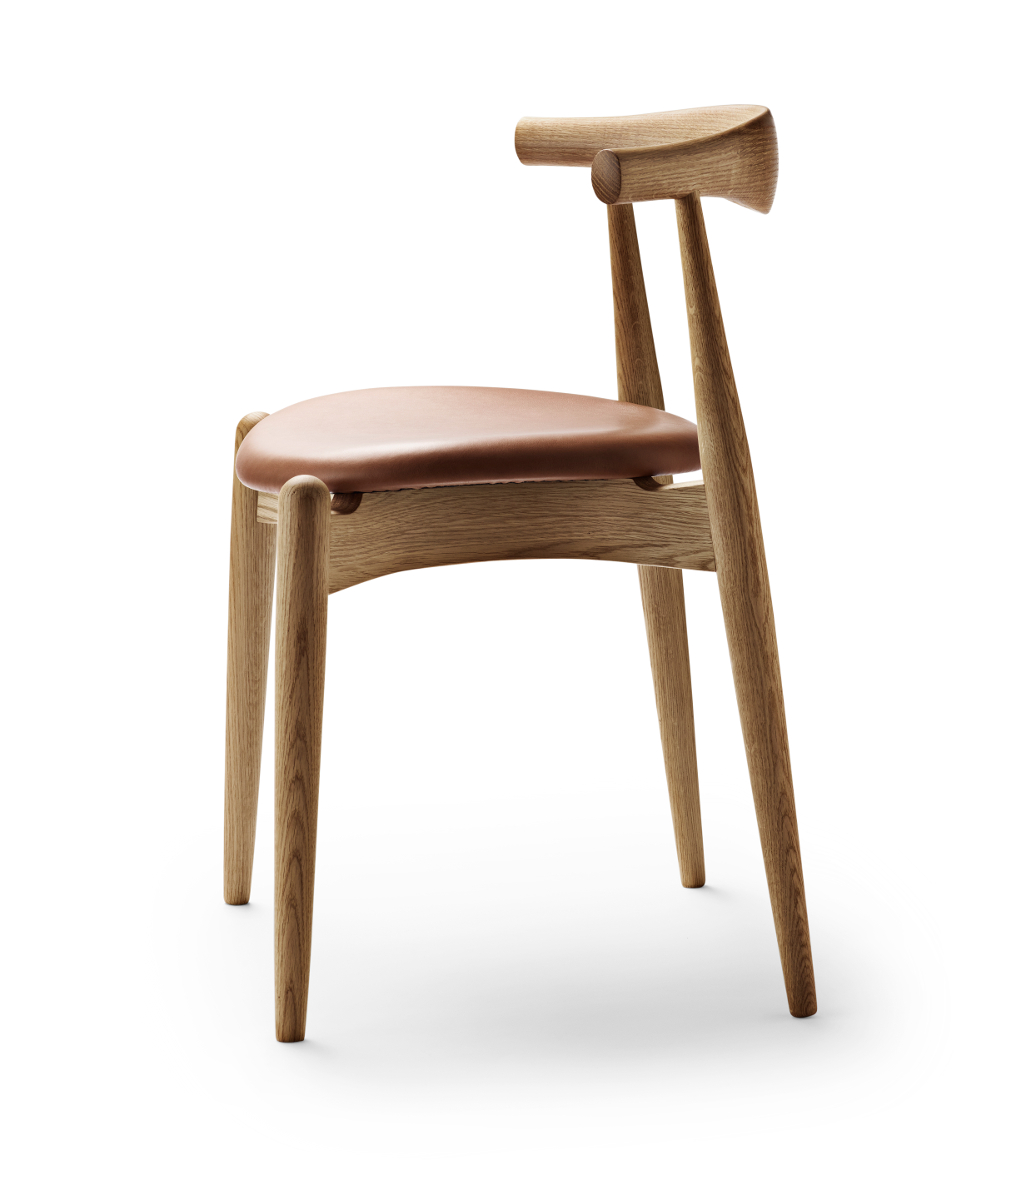 A side view of a Carl Hanson Elbow chair side view